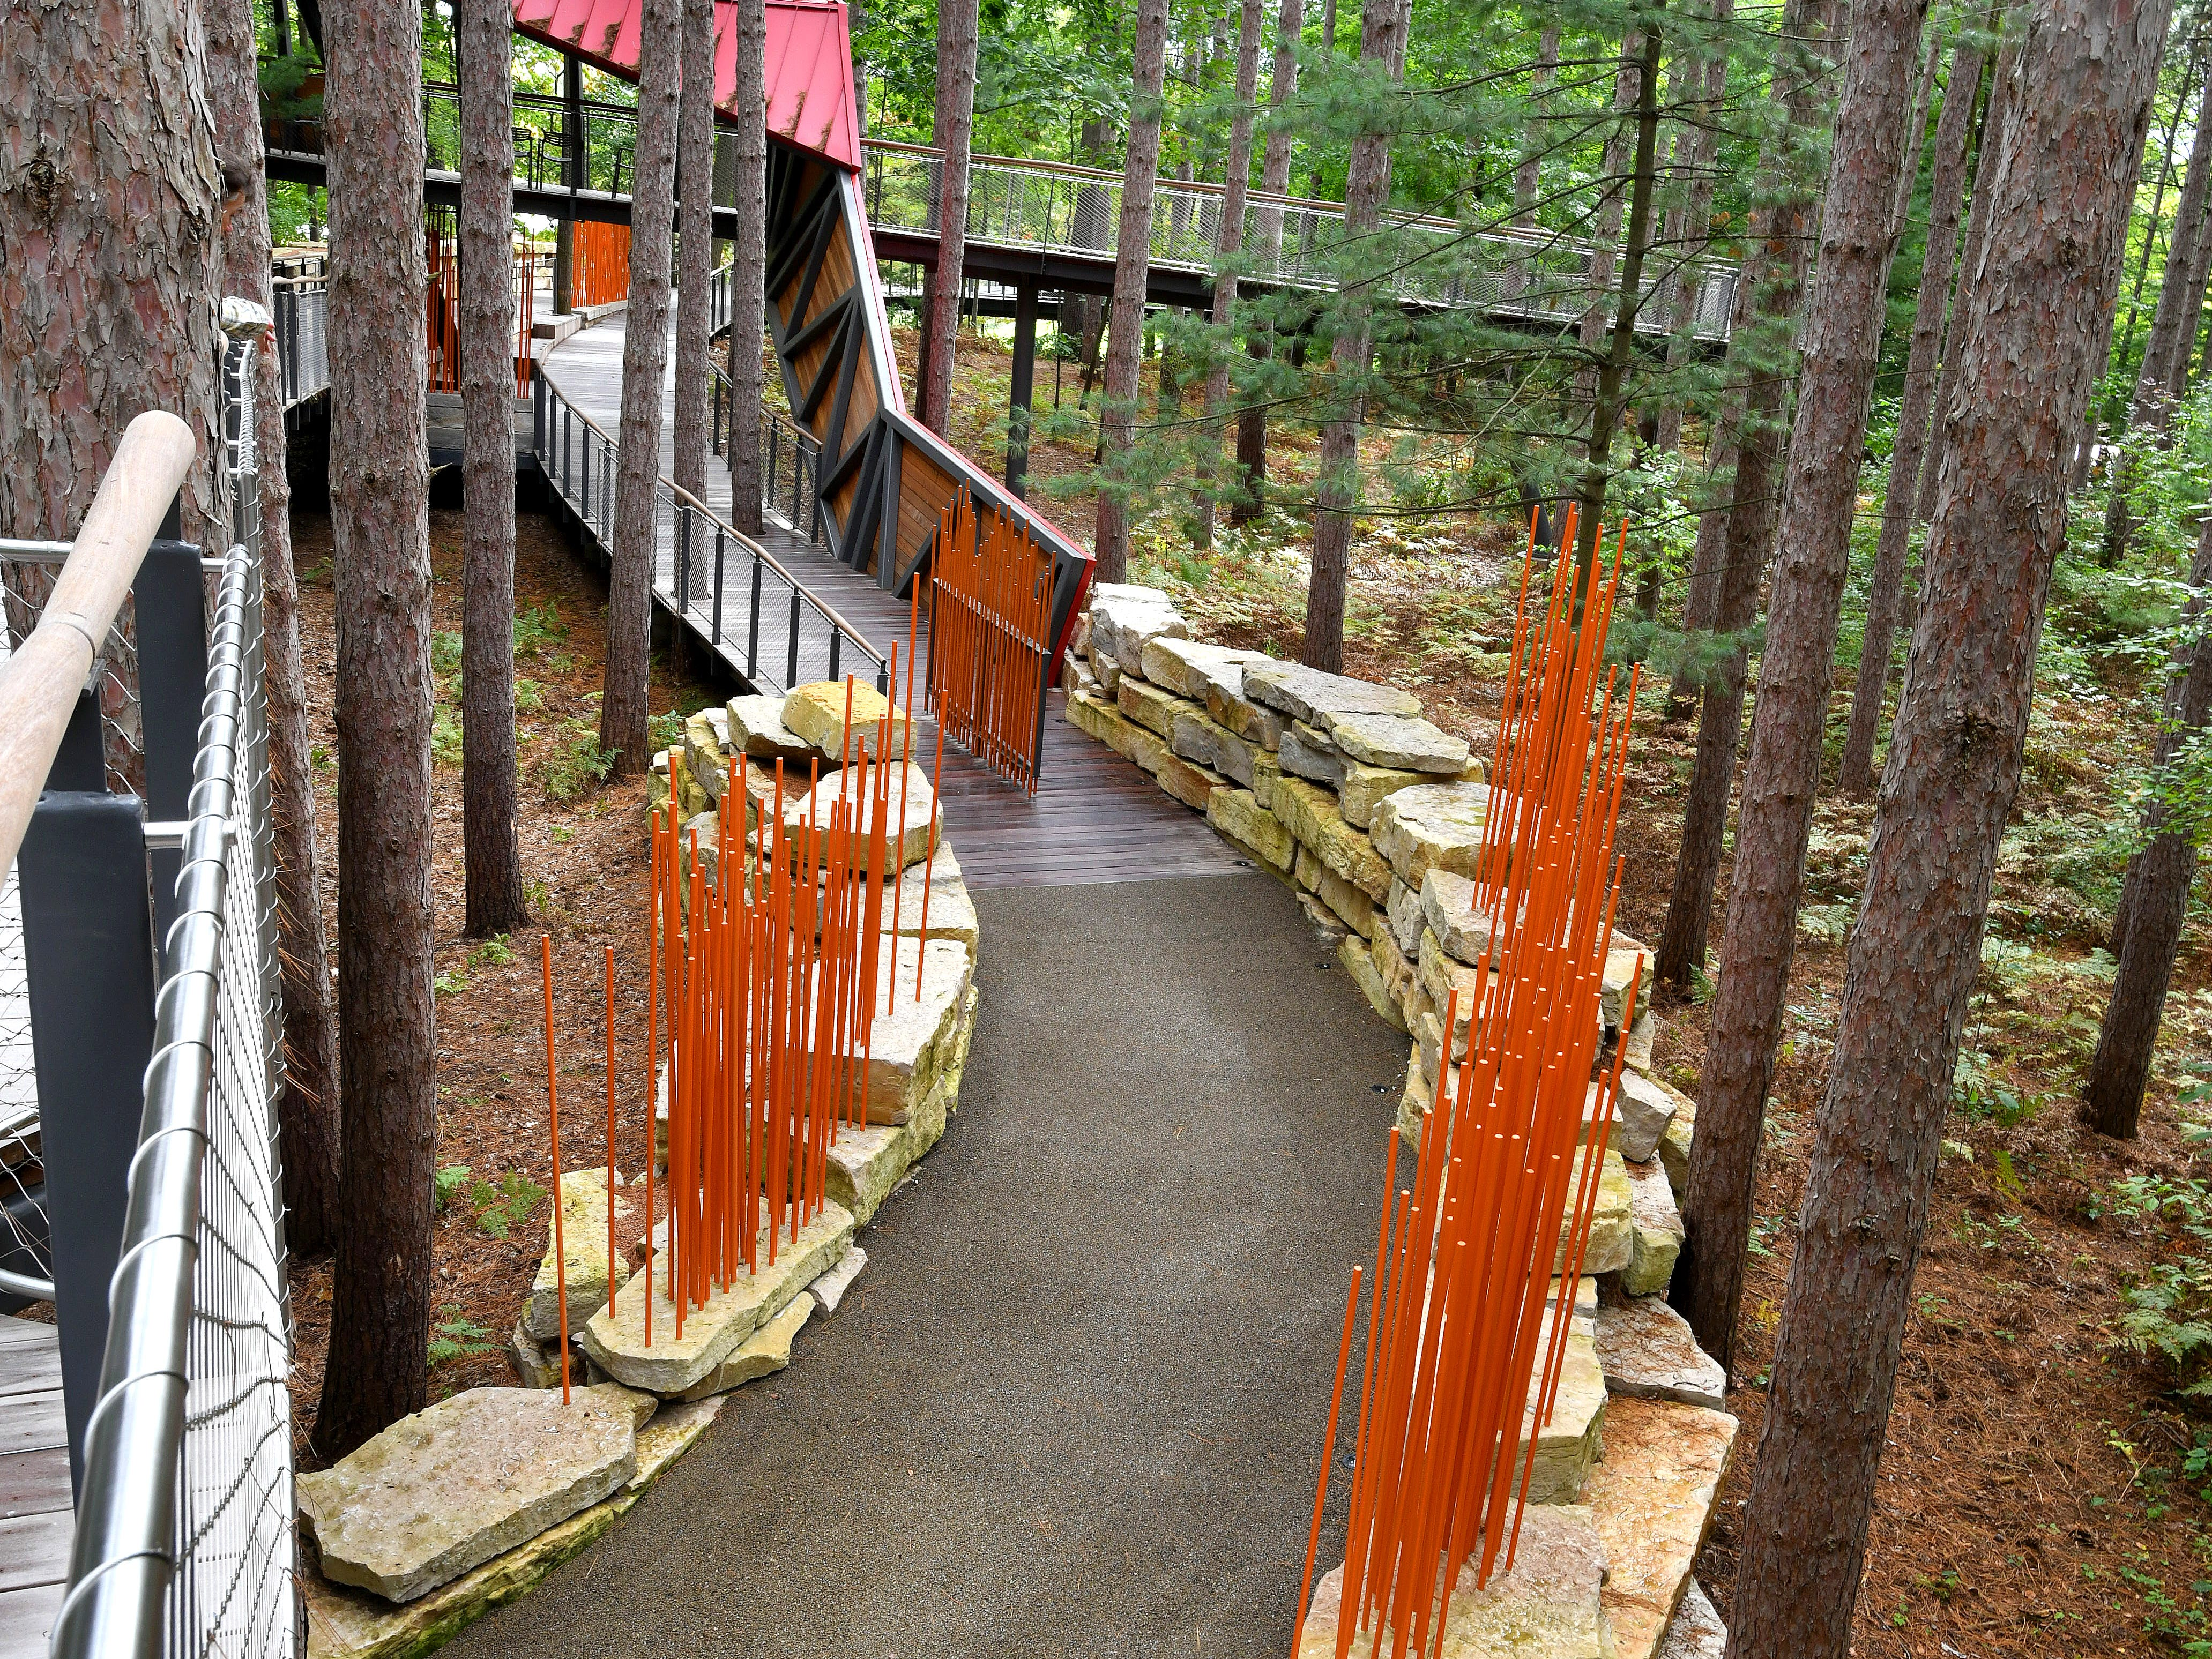 Walks intersect amid a stand of Red Pines to create the Canopy Walk.  Access to the walk slopes gently, allowing those in wheelchairs and the handicapped to enjoy the experience.